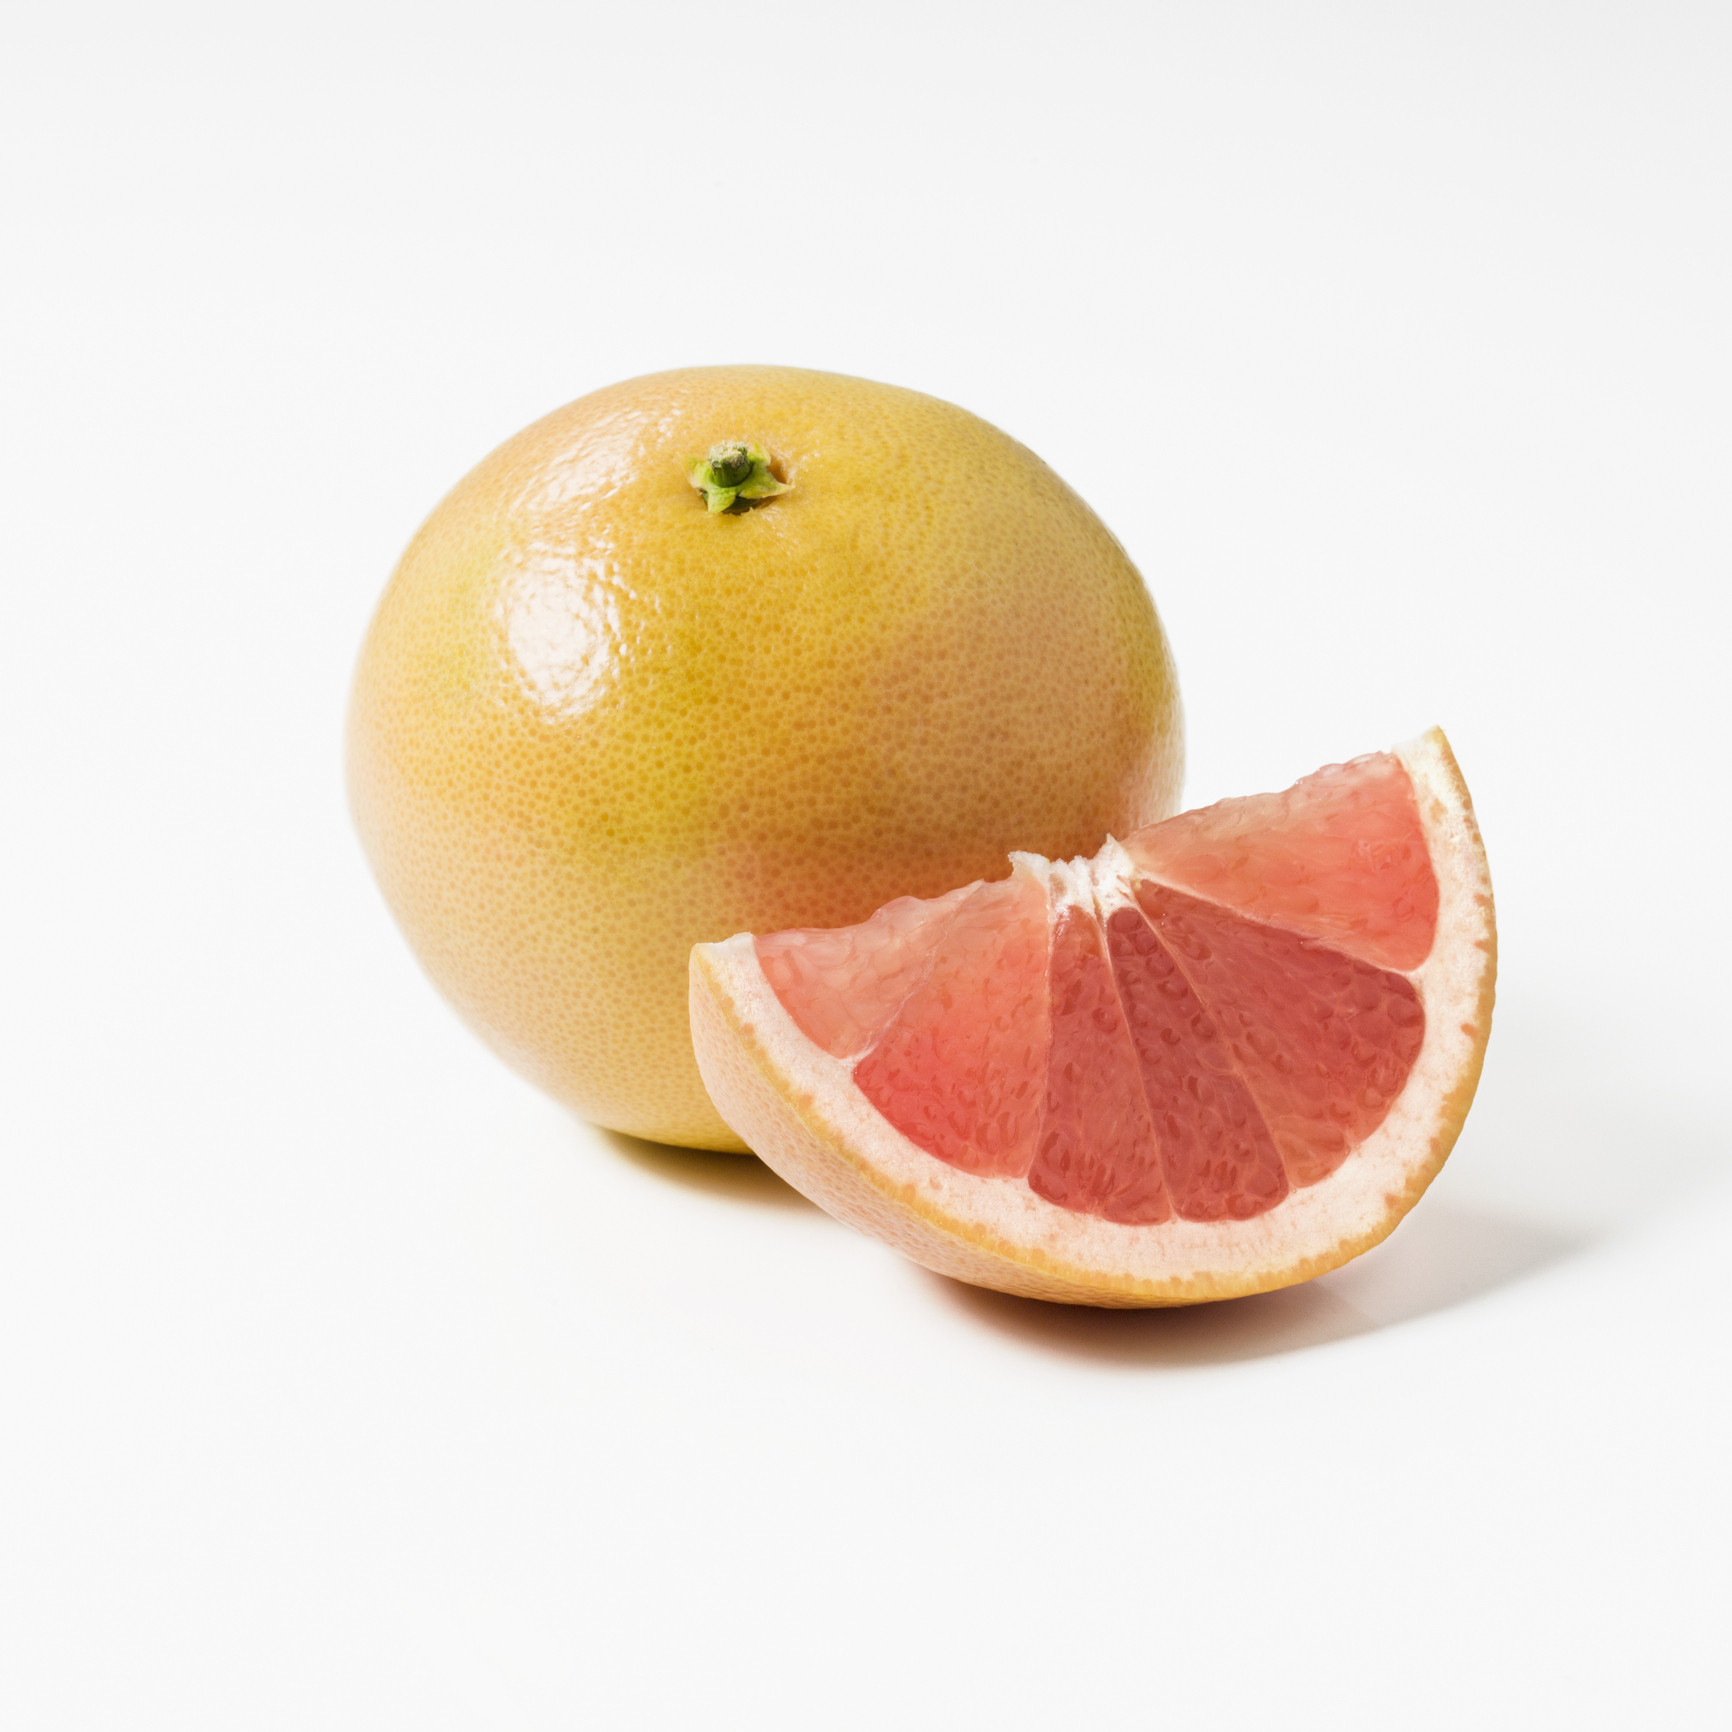 Whole grapefruit and a slice on a white background